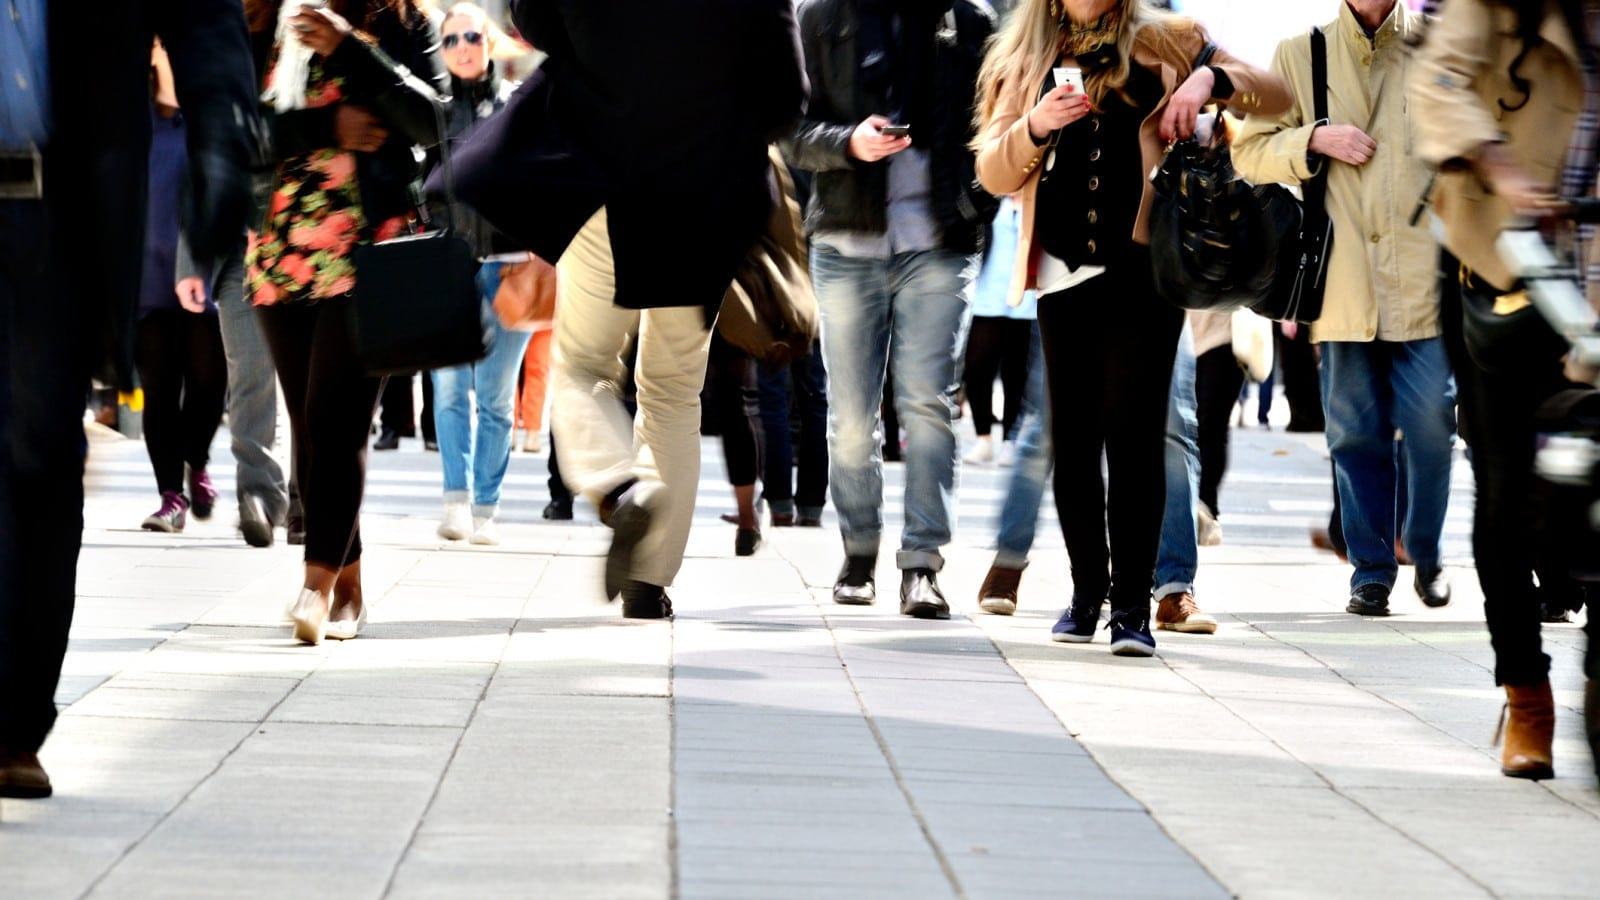 Pedestrians Walking On A Sidewalk Stock Photo